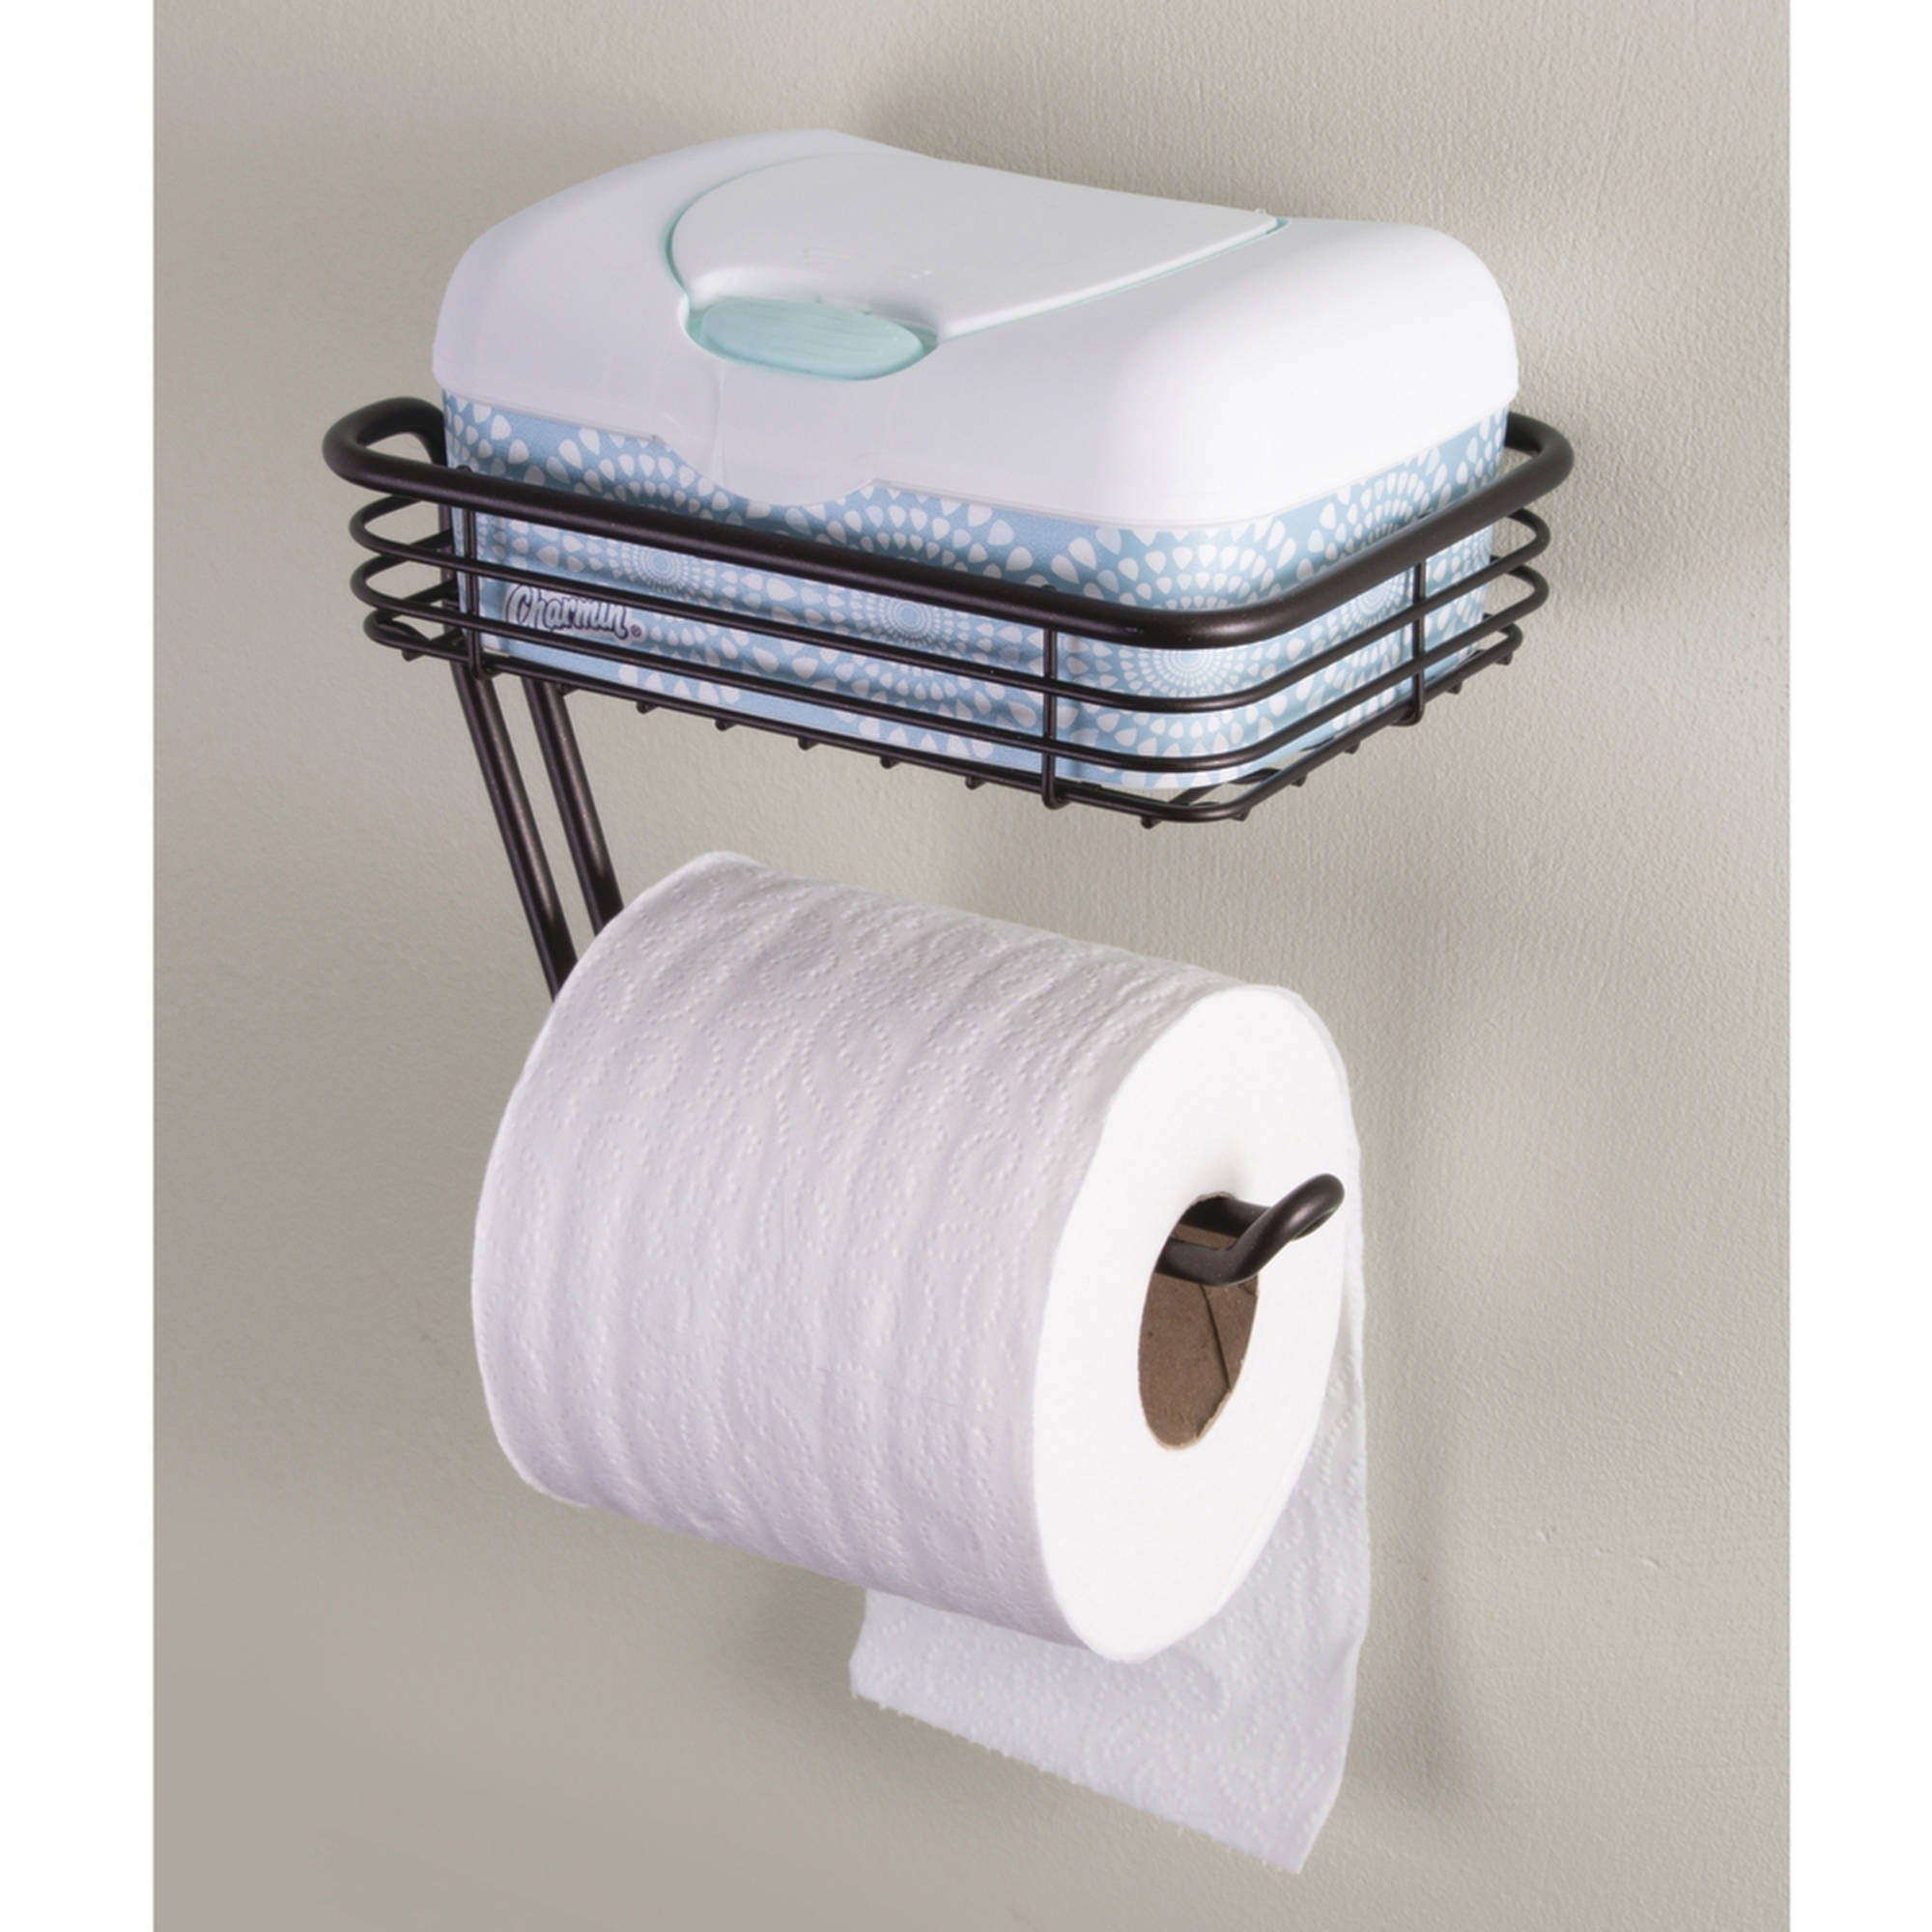 Concealed Toilet Paper Holder 4 Scented Toilet Paper Rollers Tissue Roll Holder